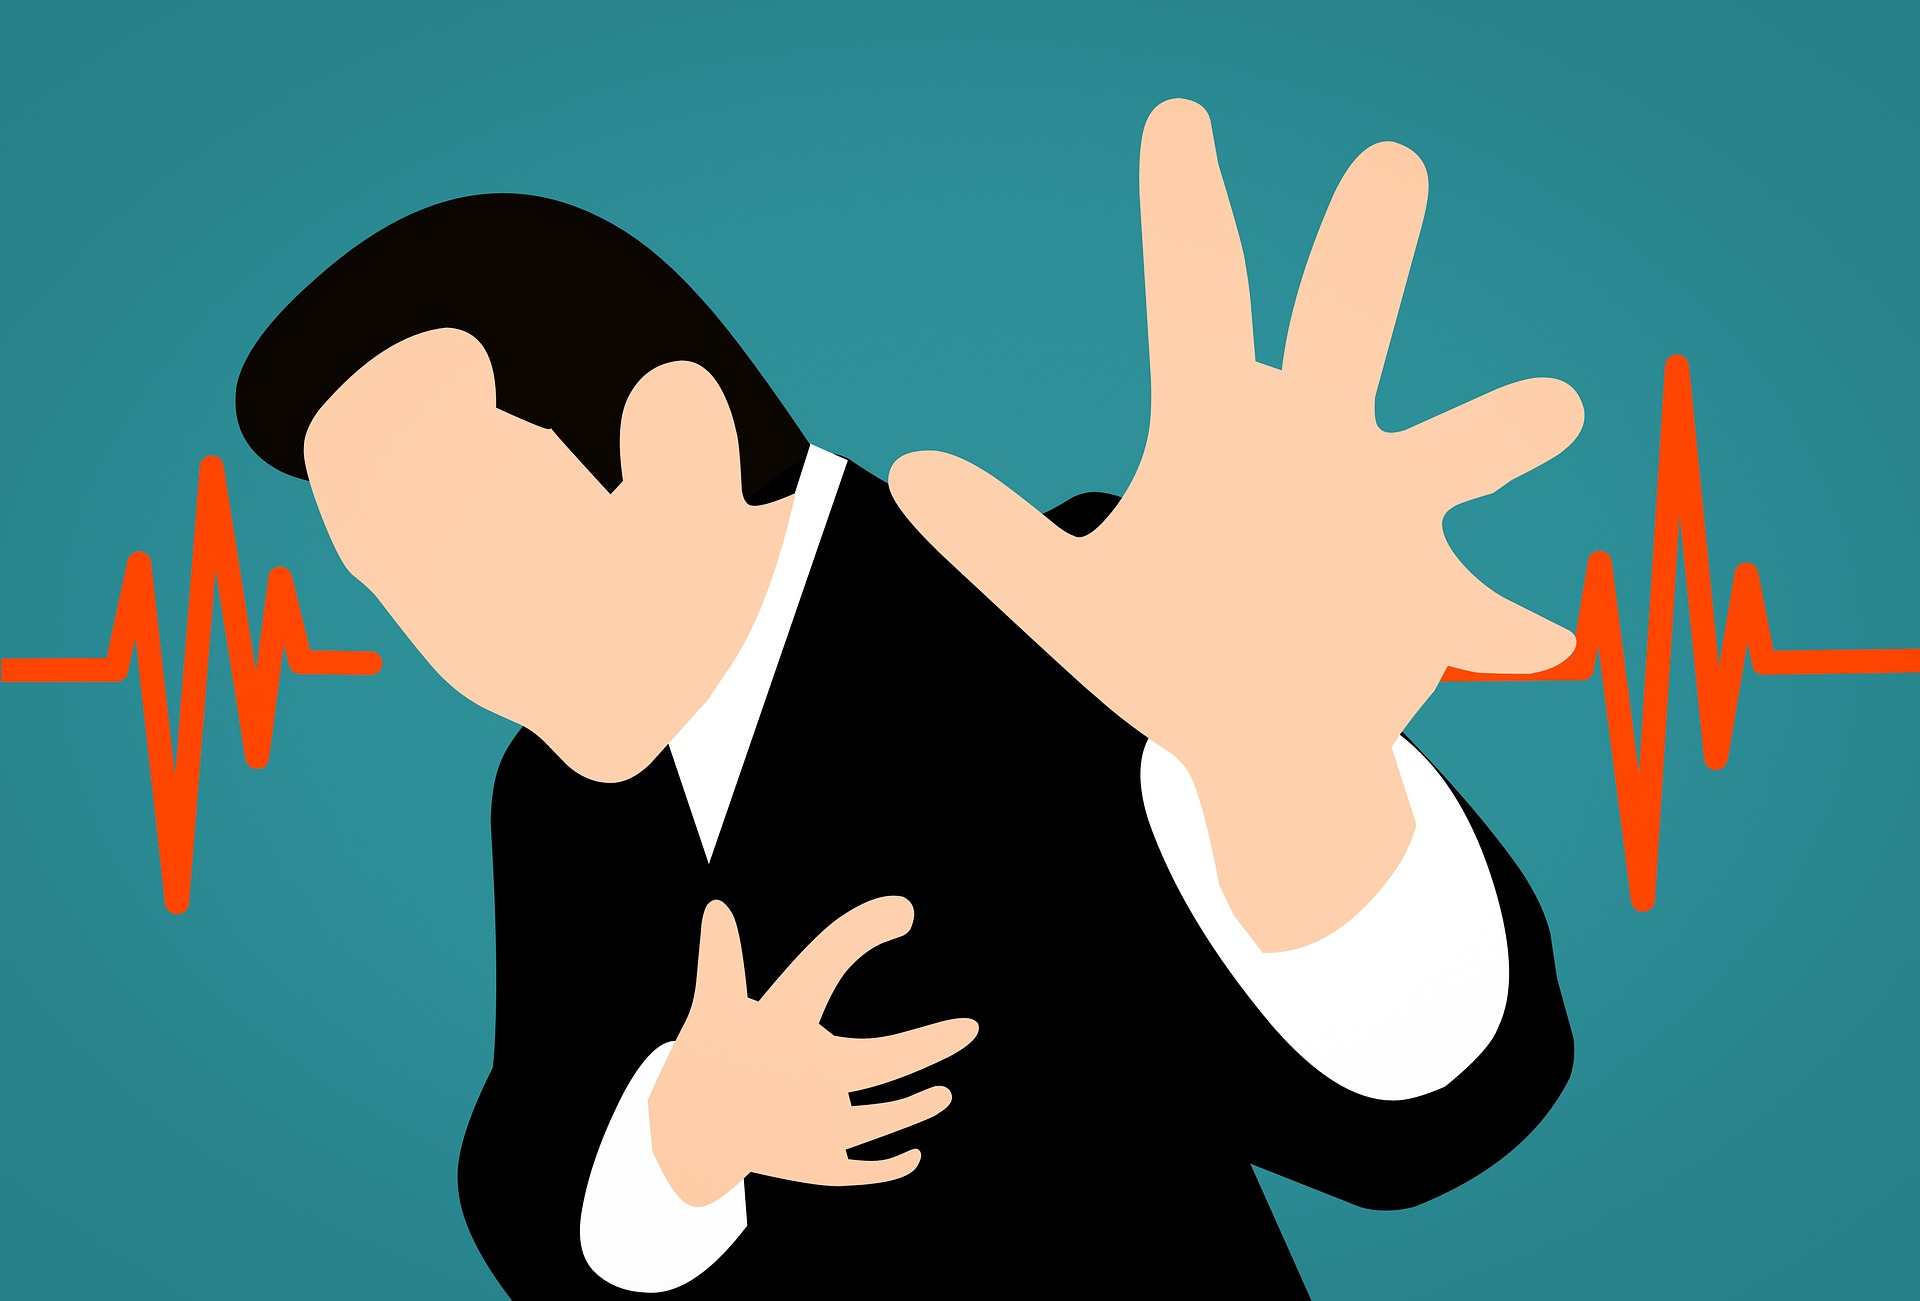 heart attack from surprise application of an indemnity